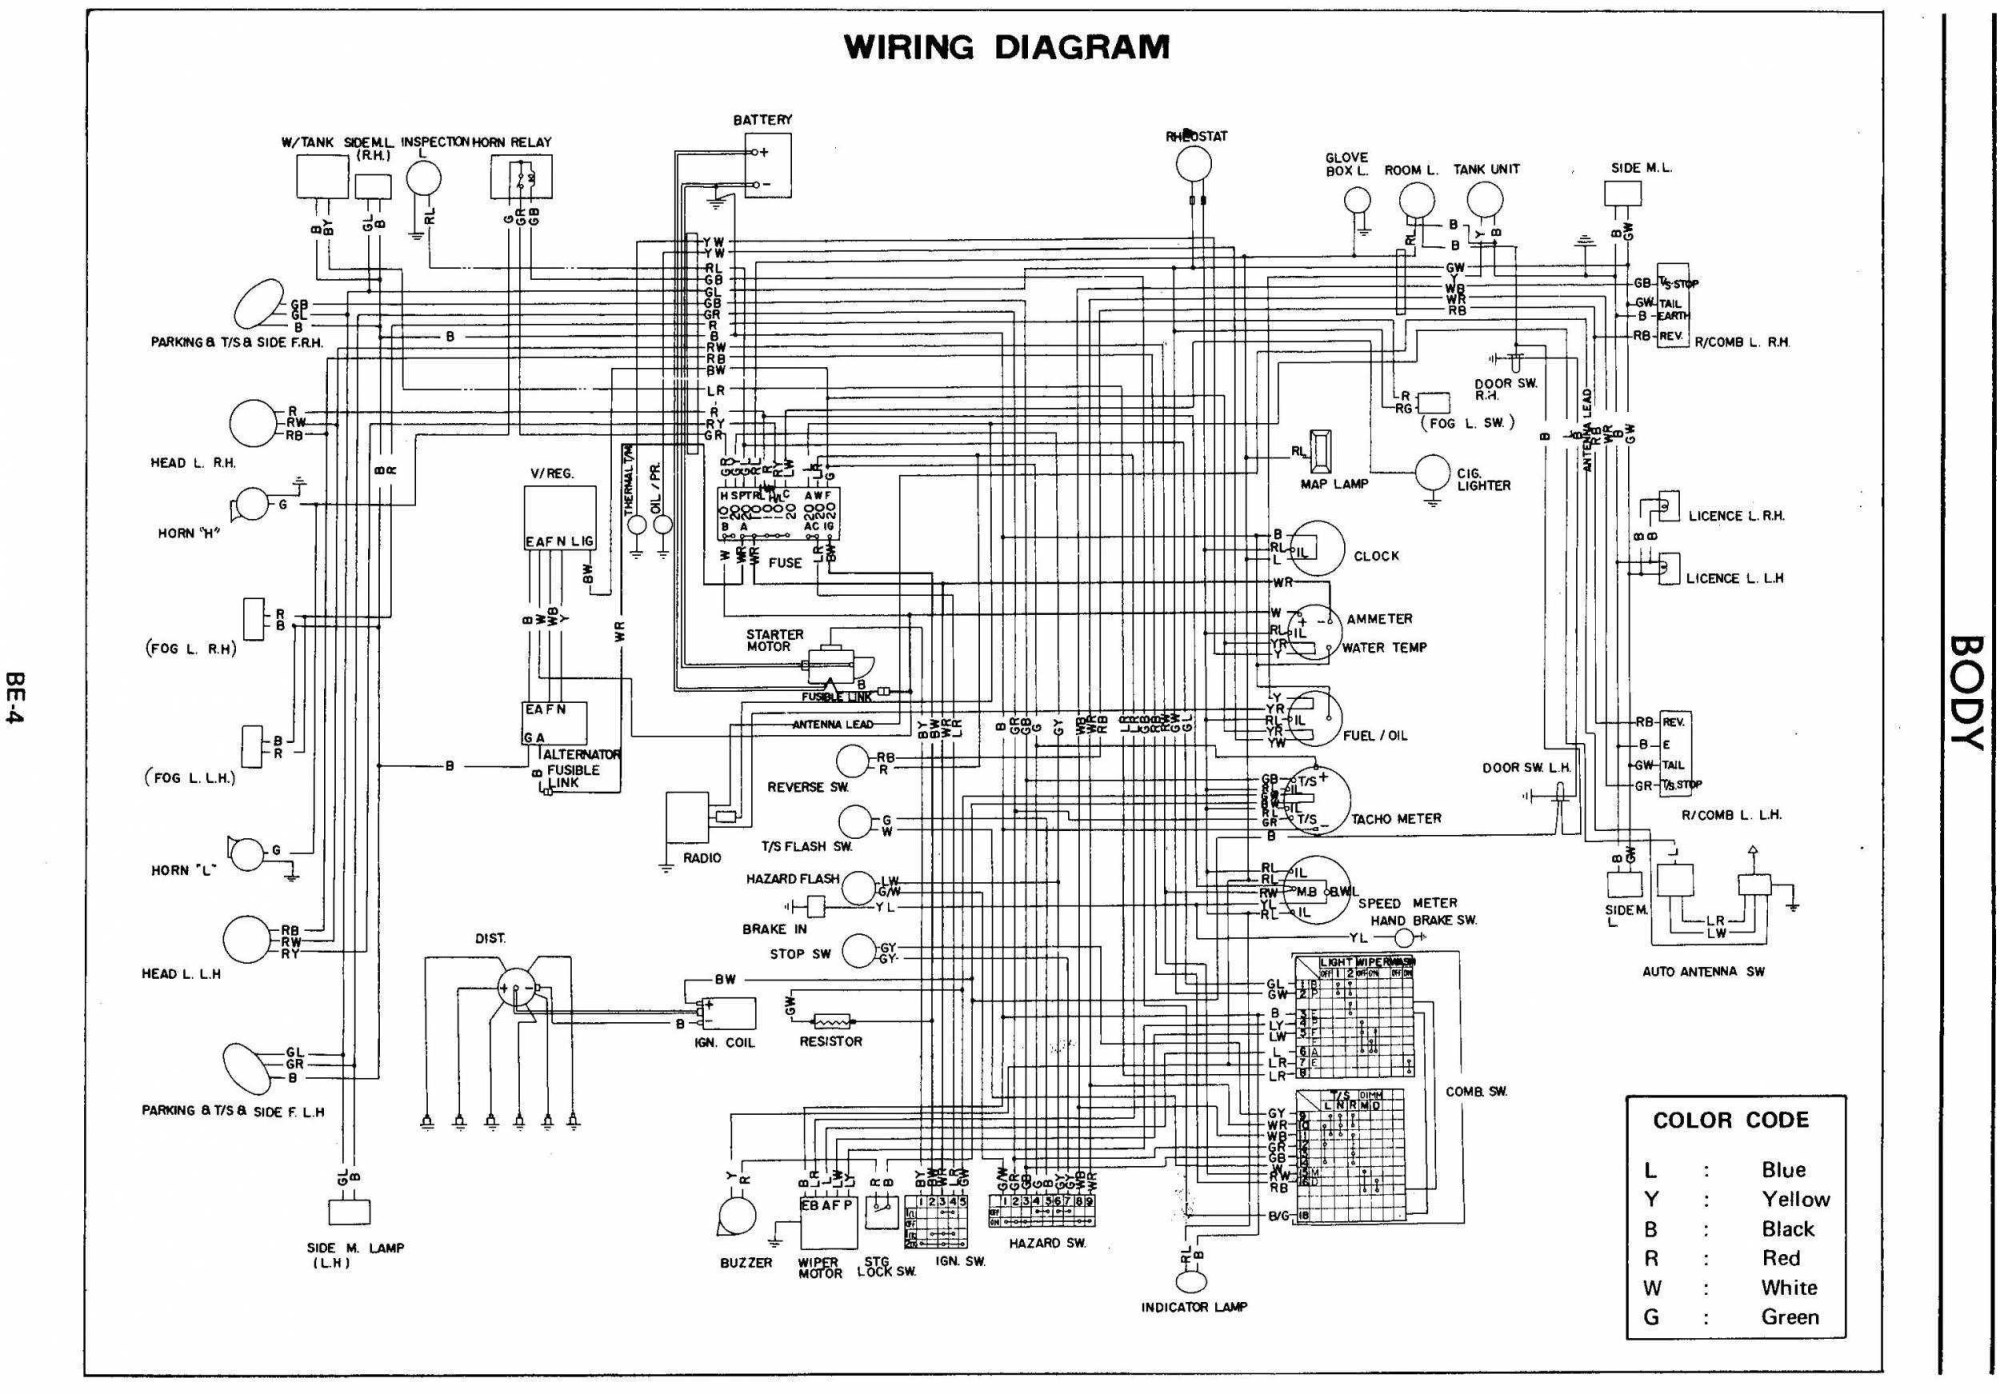 hight resolution of 2003 mercedes benz wiring diagrams wiring diagram database 2003 mercedes benz wiring diagrams wiring diagram img